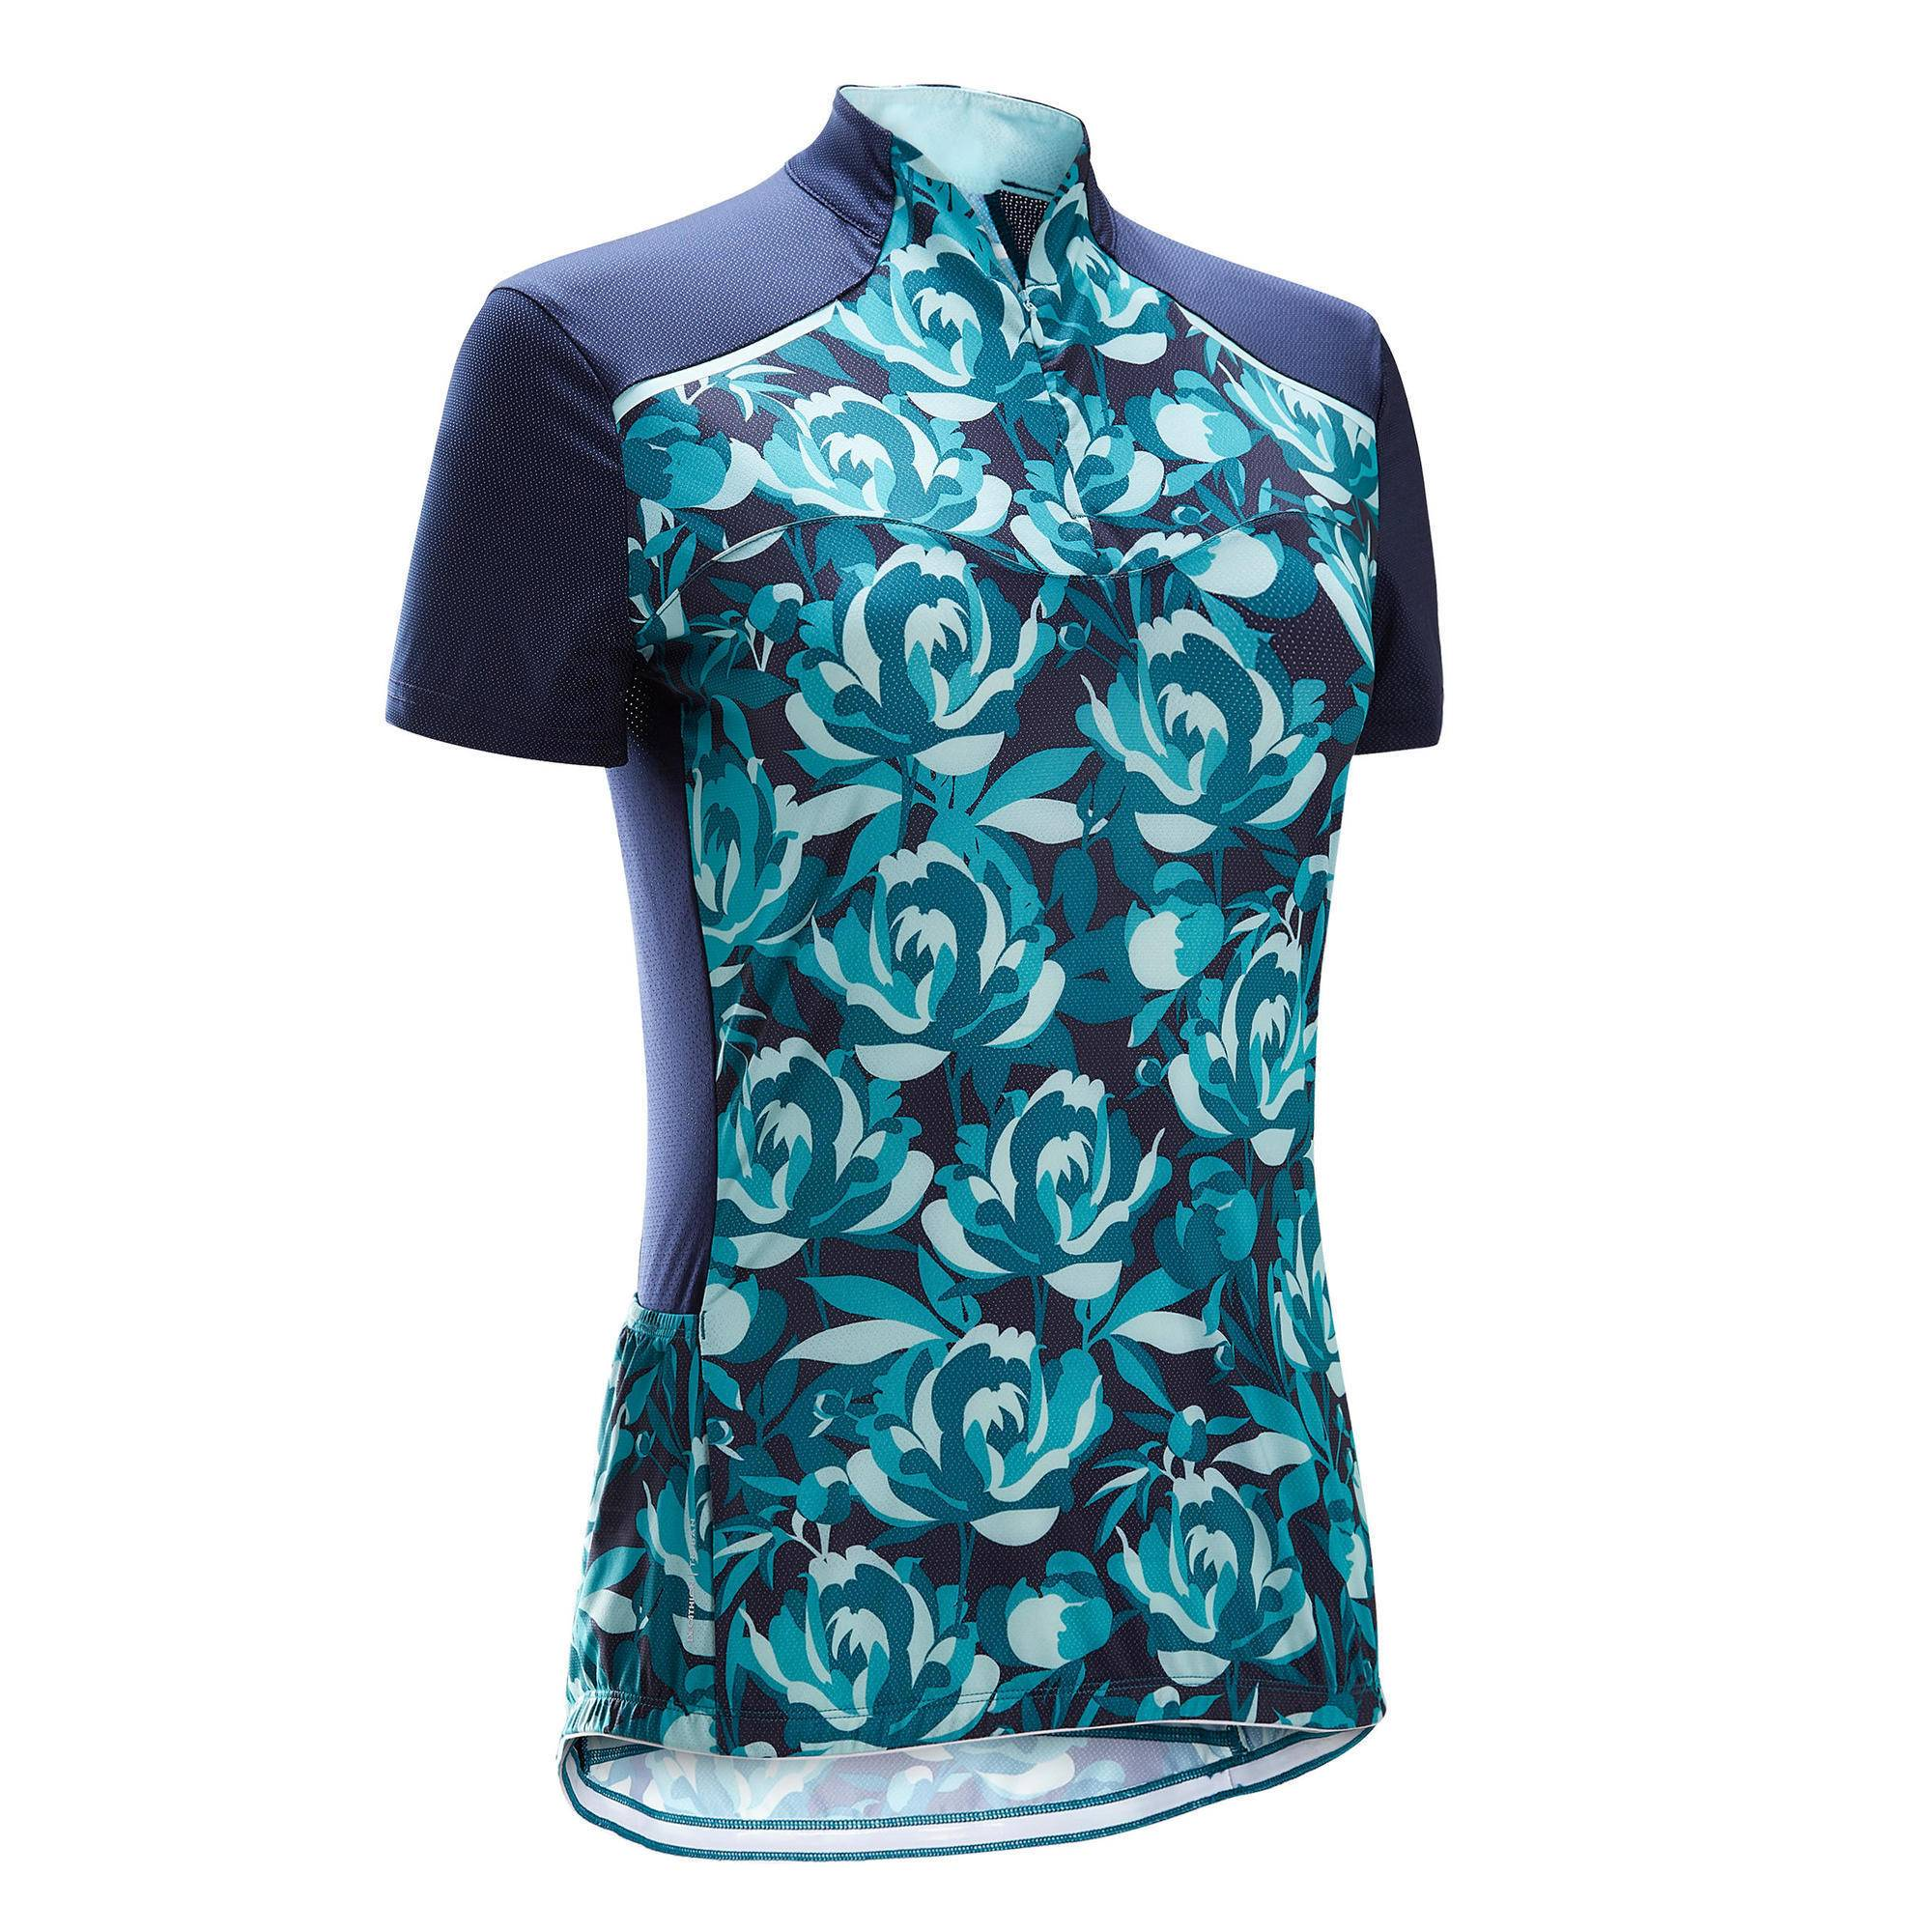 Triban MAILLOT MANCHES COURTES VELO ROUTE FEMME TRIBAN 500 FLORAL VERT - Triban